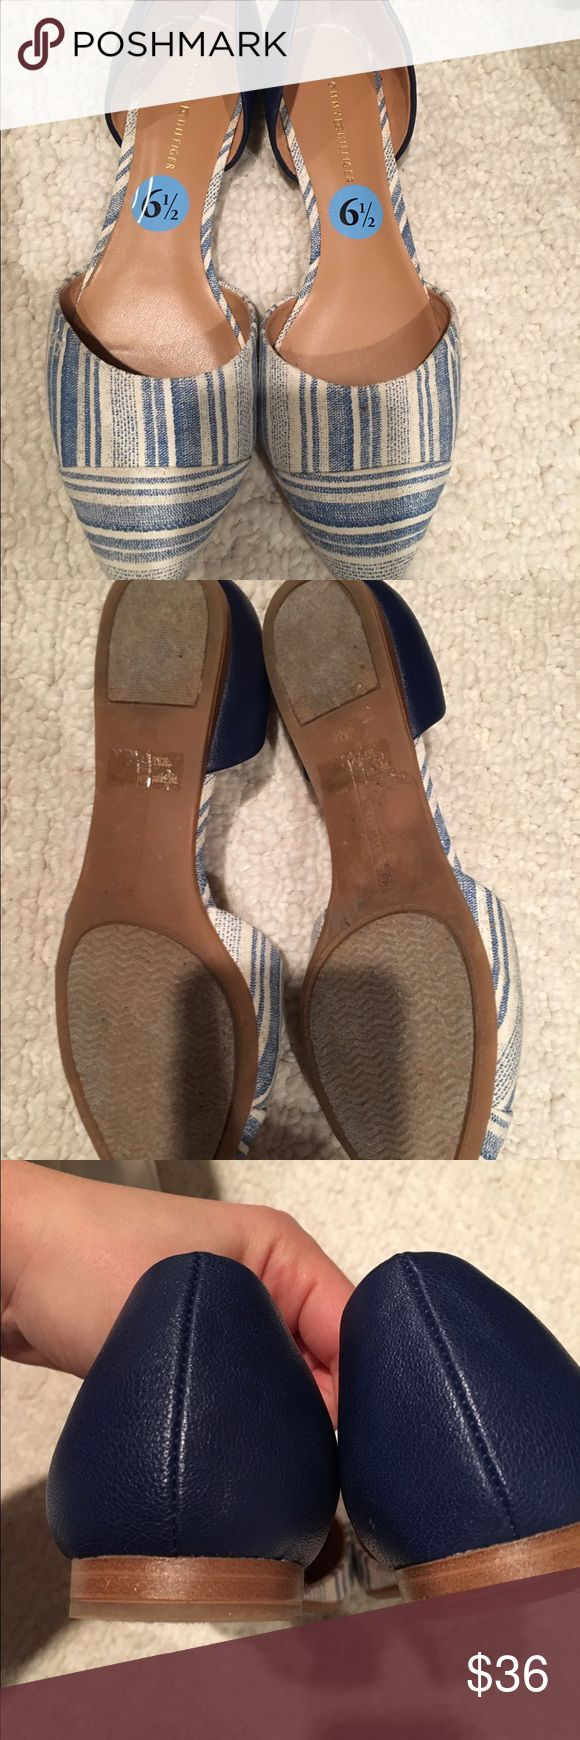 Tommy Hilfiger Ballet Flats size 6 1/2 Tommy Hilfiger Ballet Flats size 6 1/2 with blue stripes and solid heel. Cotton canvas toe and solid heel. Comfortable insole. Light wear. See photos Tommy Hilfiger Shoes Flats & Loafers